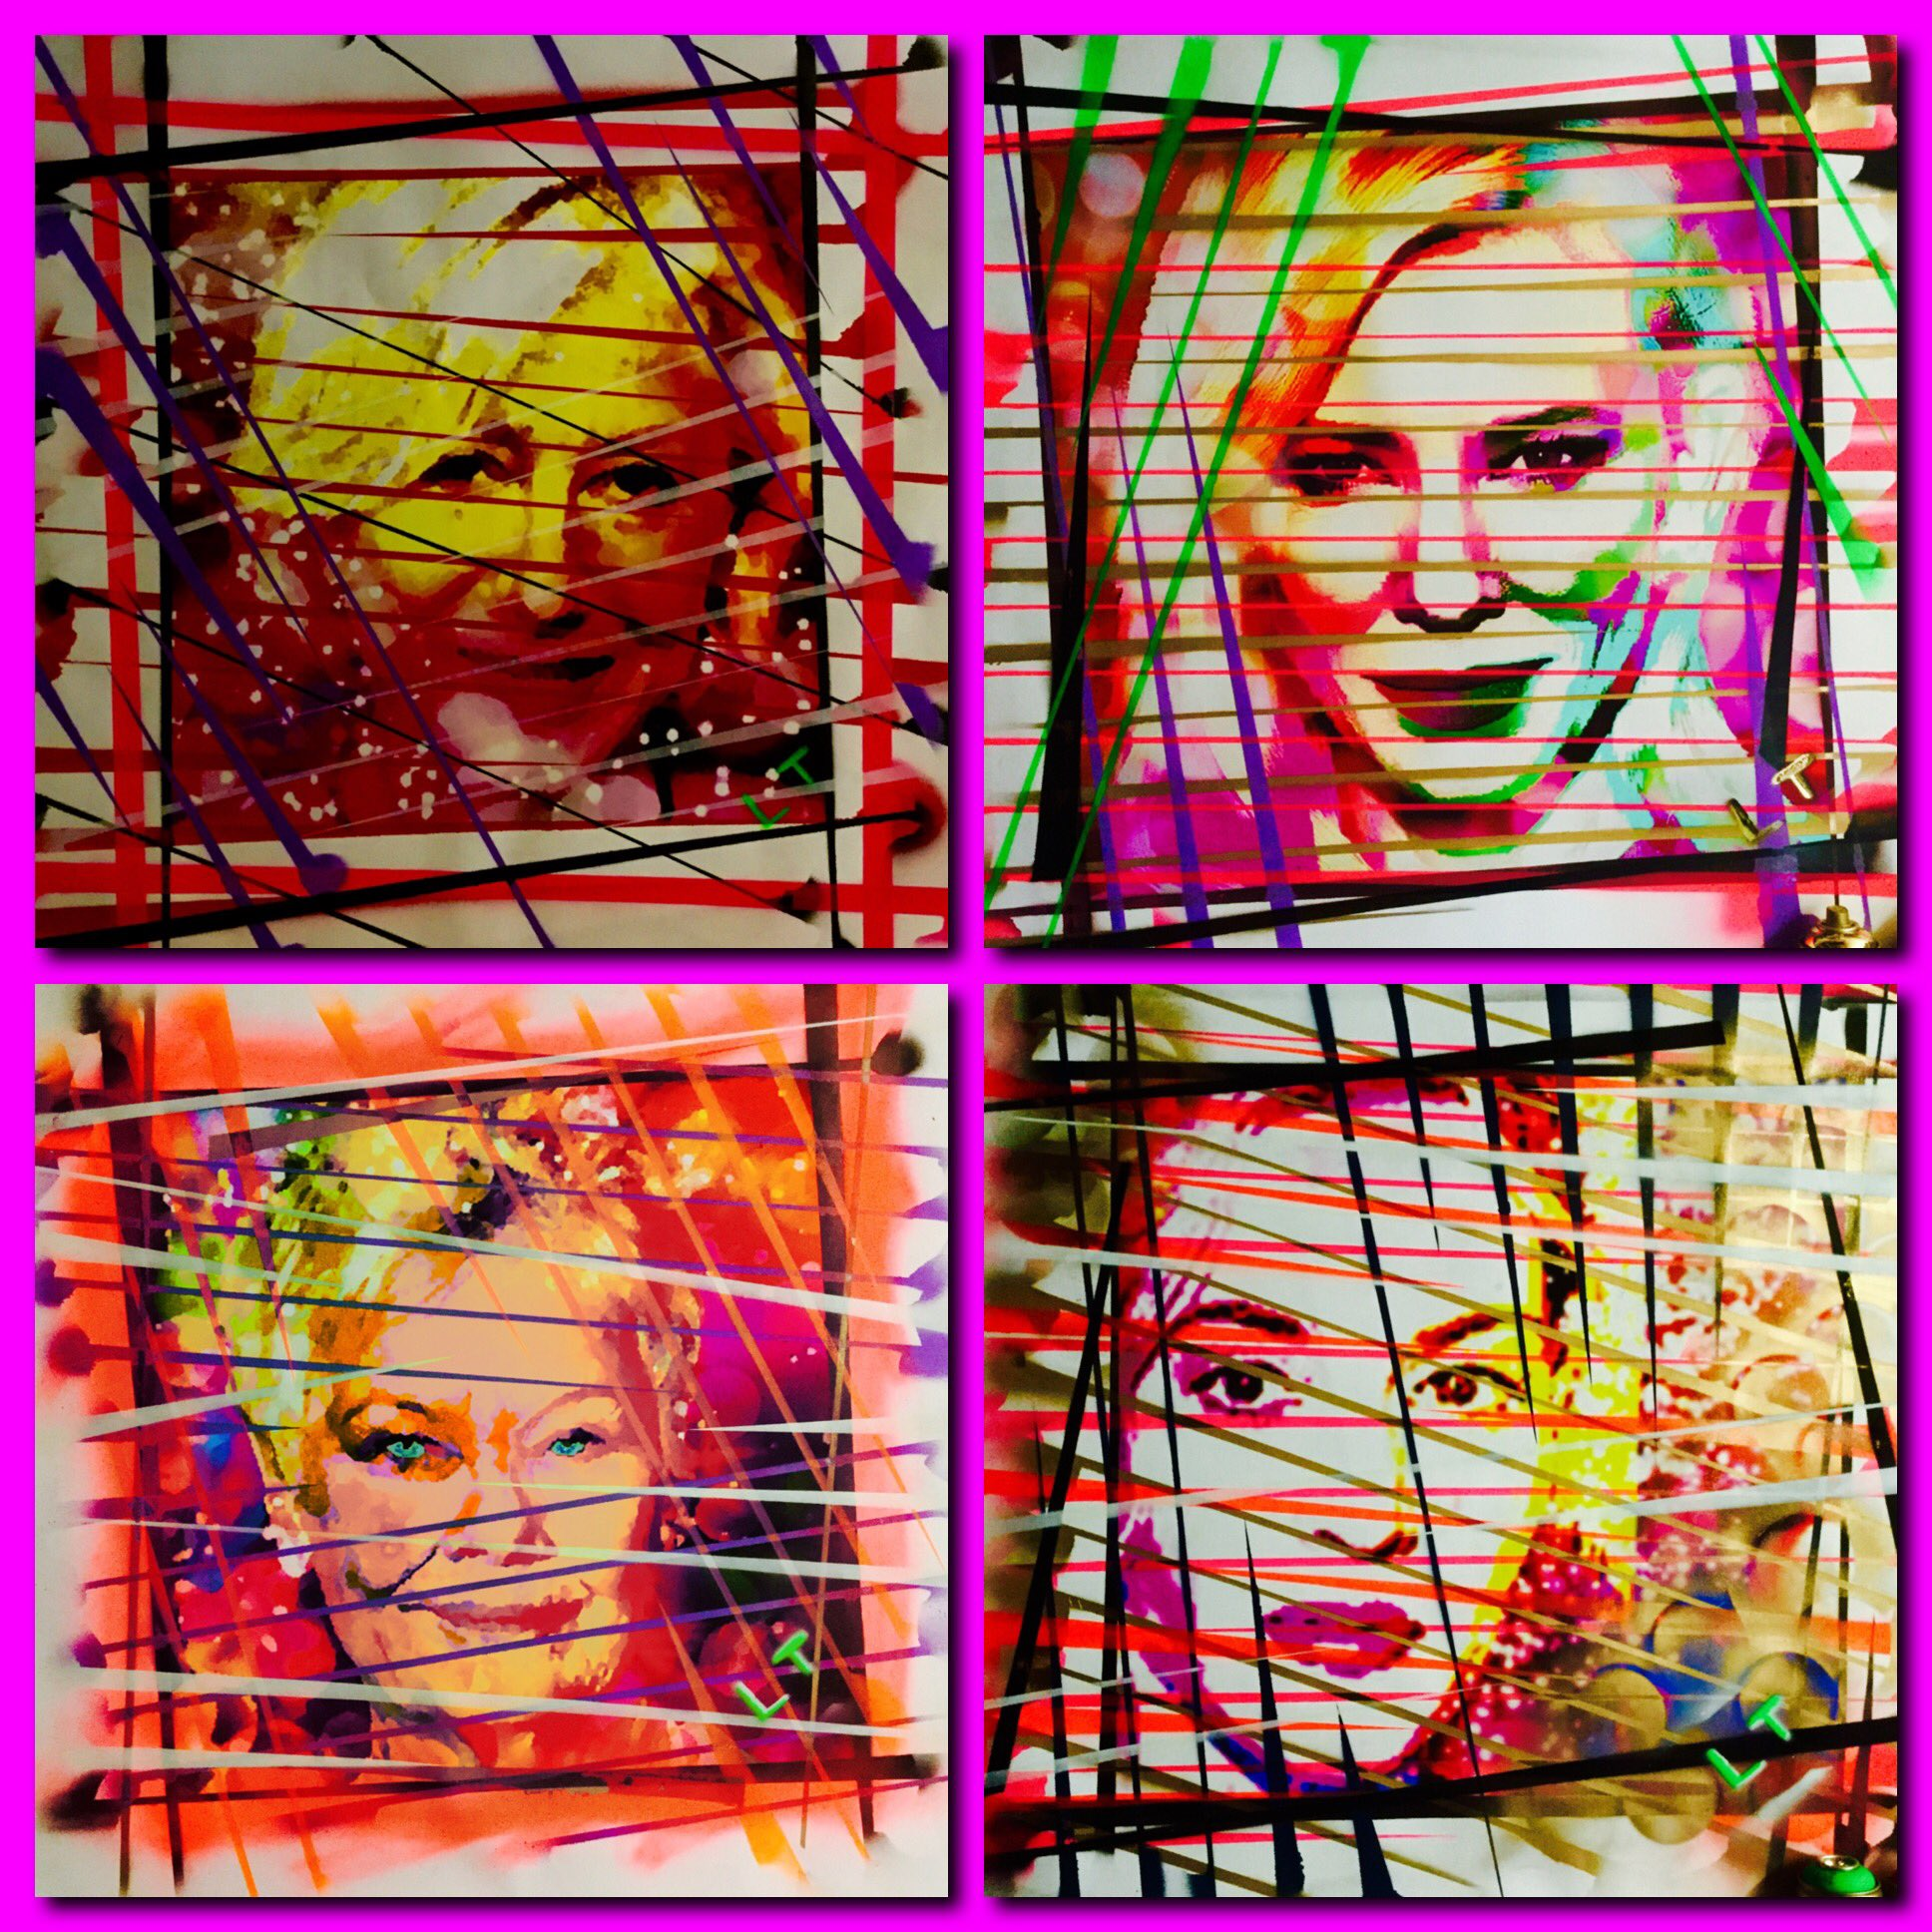 RT @LincolnTownley: Extreme colour achieved using @mhoilpaints prints by @KleinEditions heading for LA this week...and me! https://t.co/tvD…